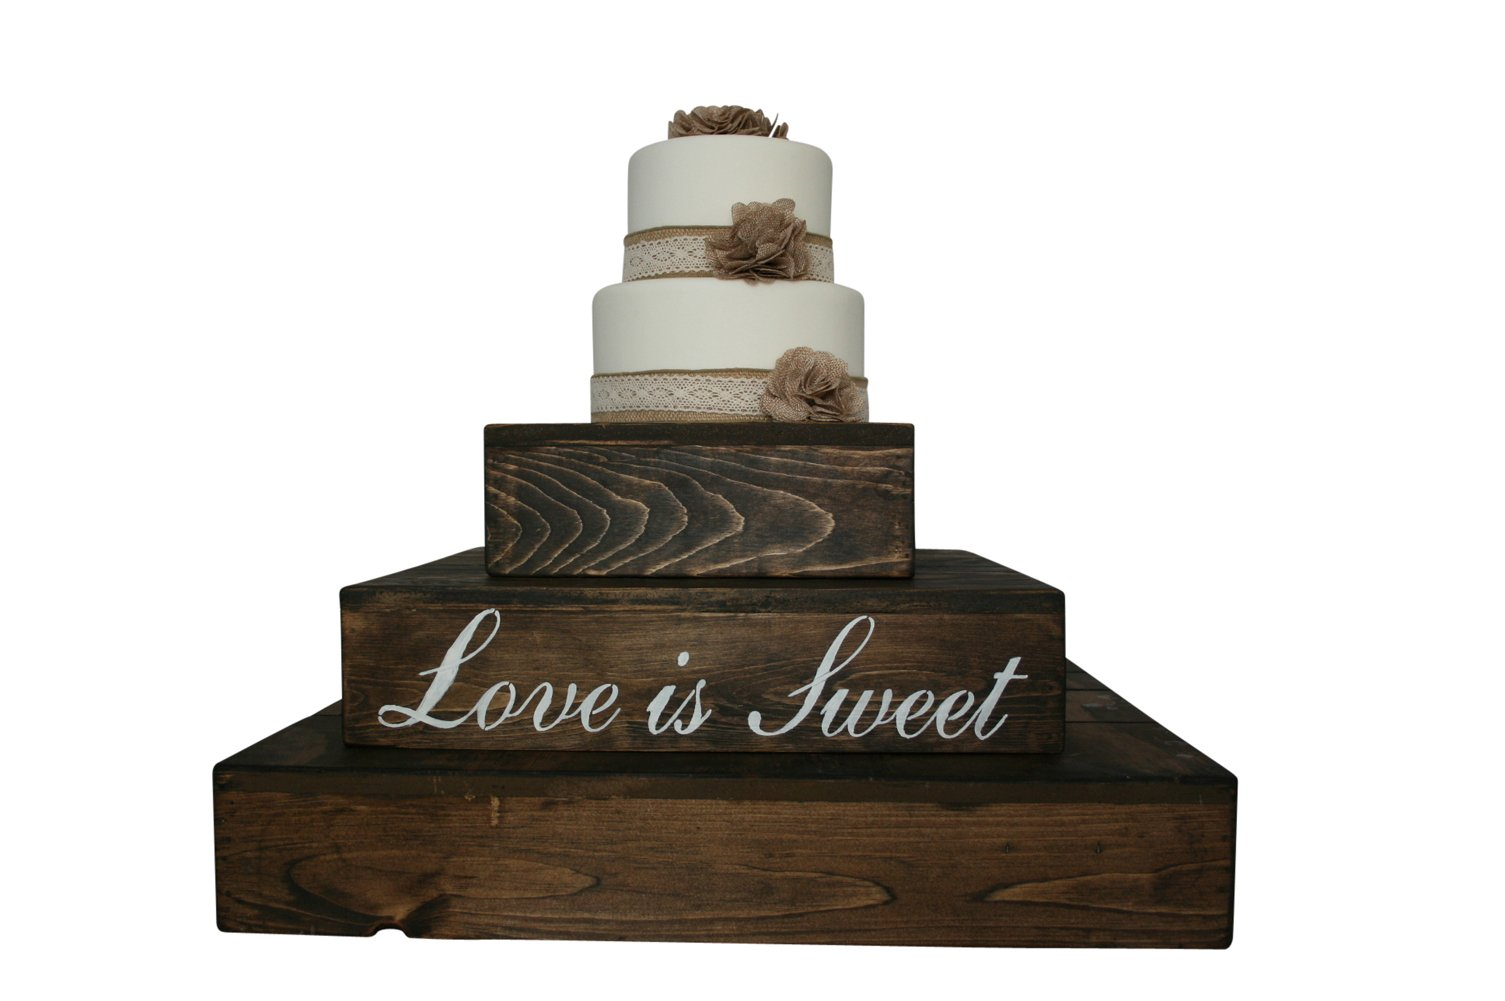 Rustic Wedding Country Barn Farmhouse Wedding Cake Cupcake Stand 3 Tier Rustic Wooden Country Cake Cupcake Stand (Dark Walnut) by Cleo Classic Designs (Image #2)